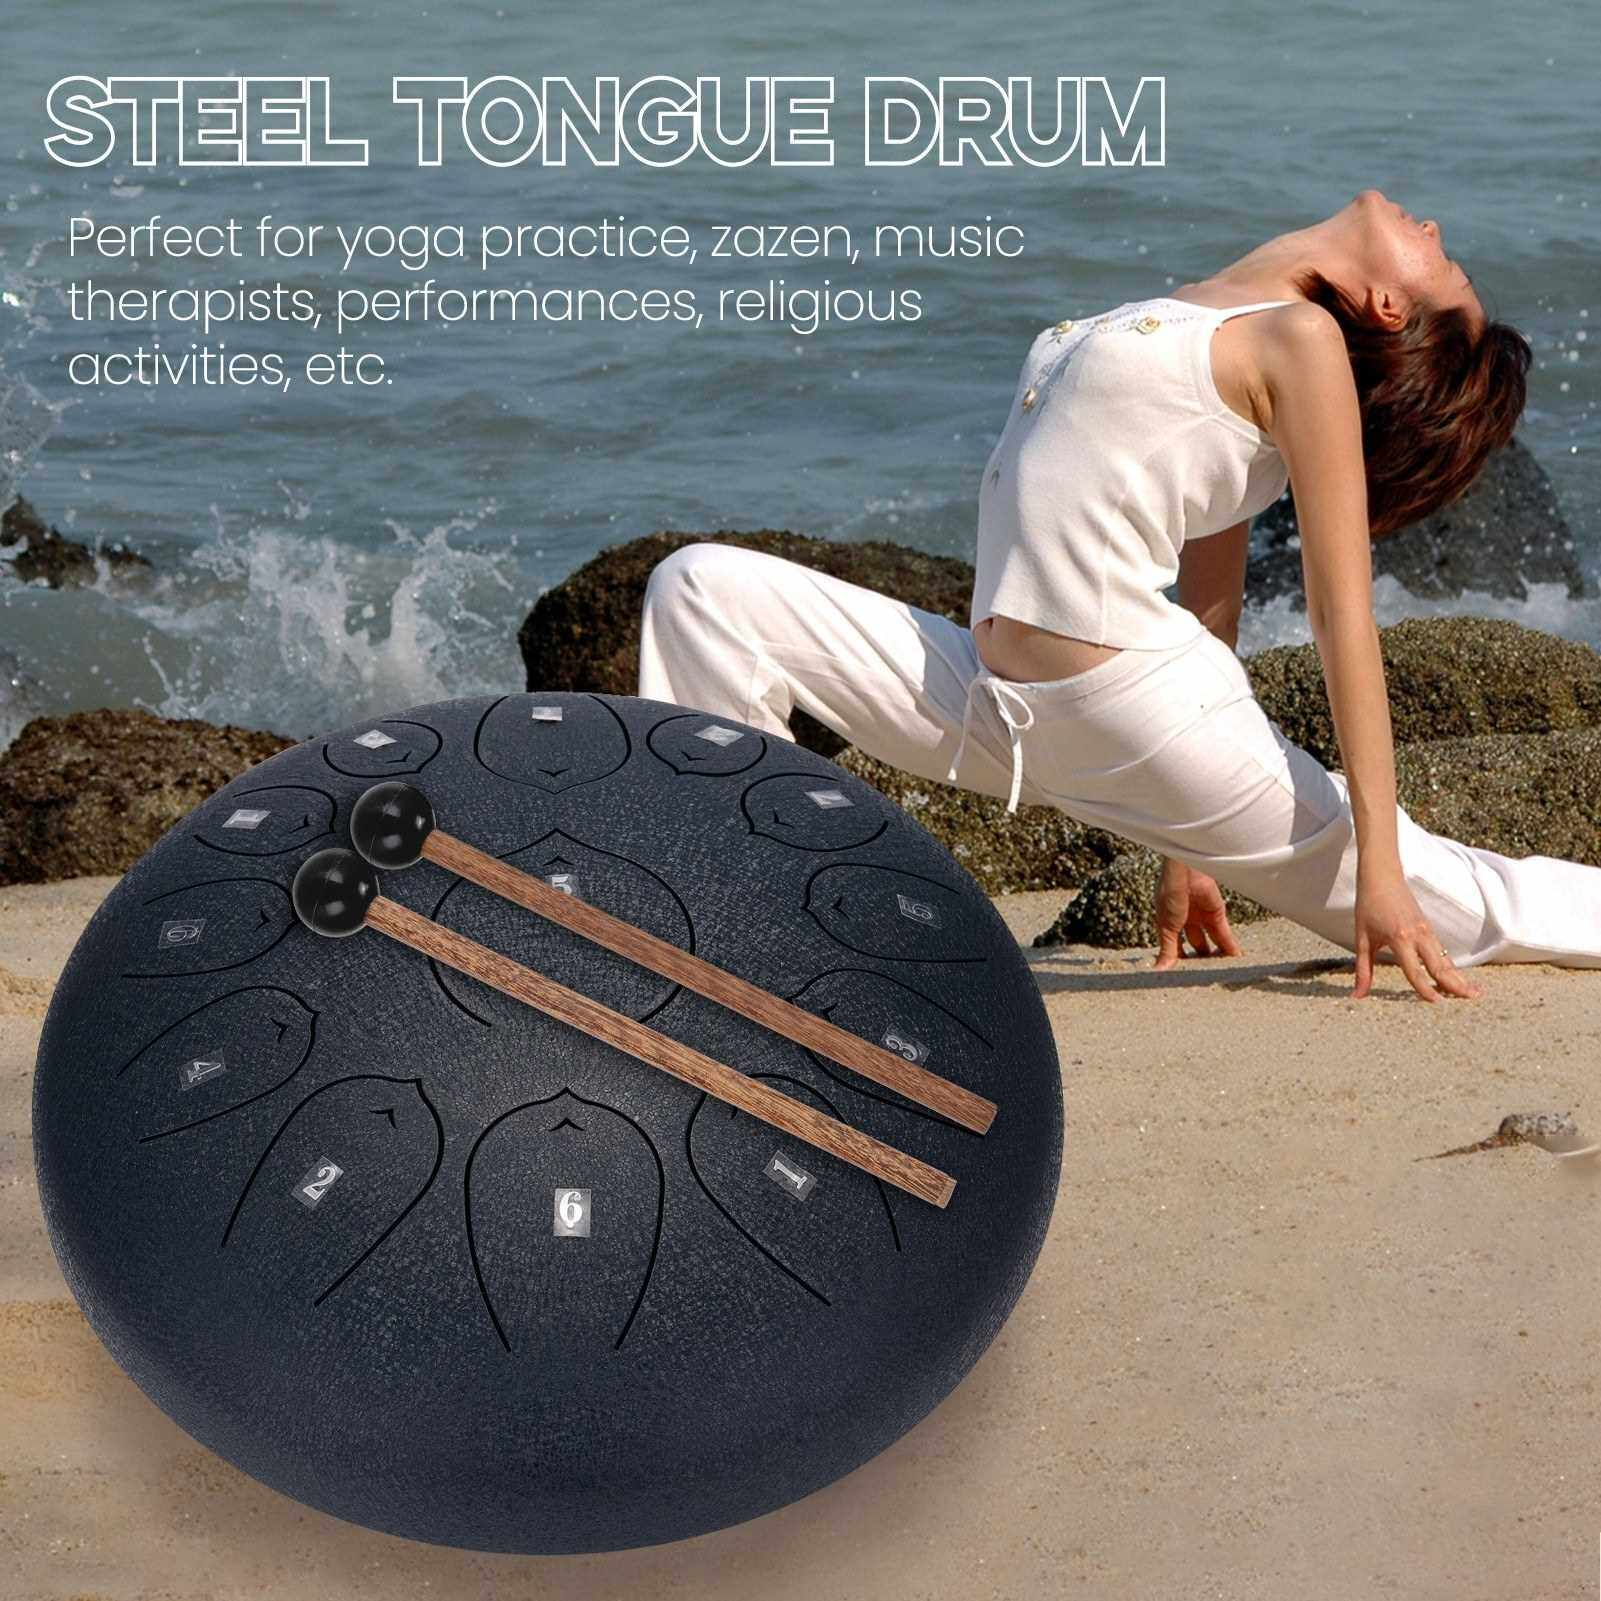 12 inch 13-Tone Steel Tongue Drum Mini Hand Pan Drums with Drumsticks Percussion Musical Instruments (Silver)